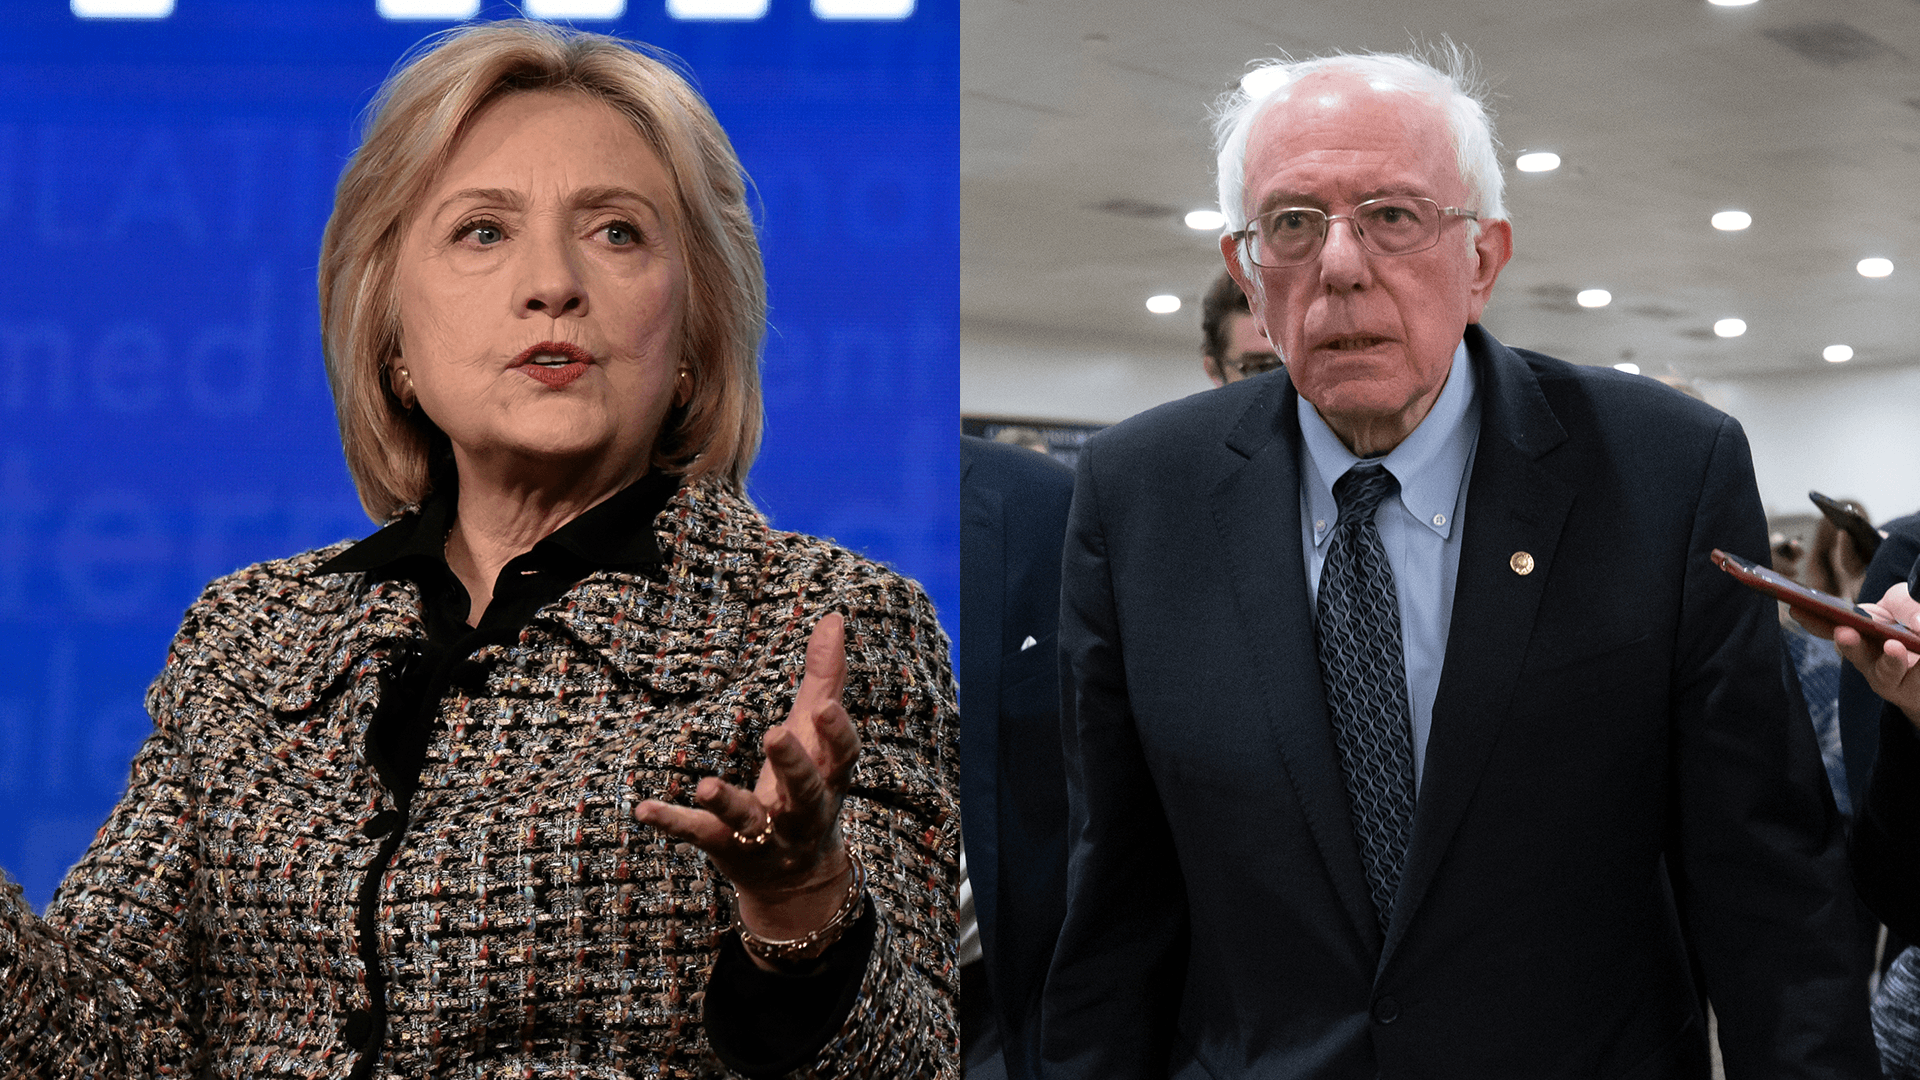 Sanders on Clinton: 'Secretary Clinton is entitled to her point of view'